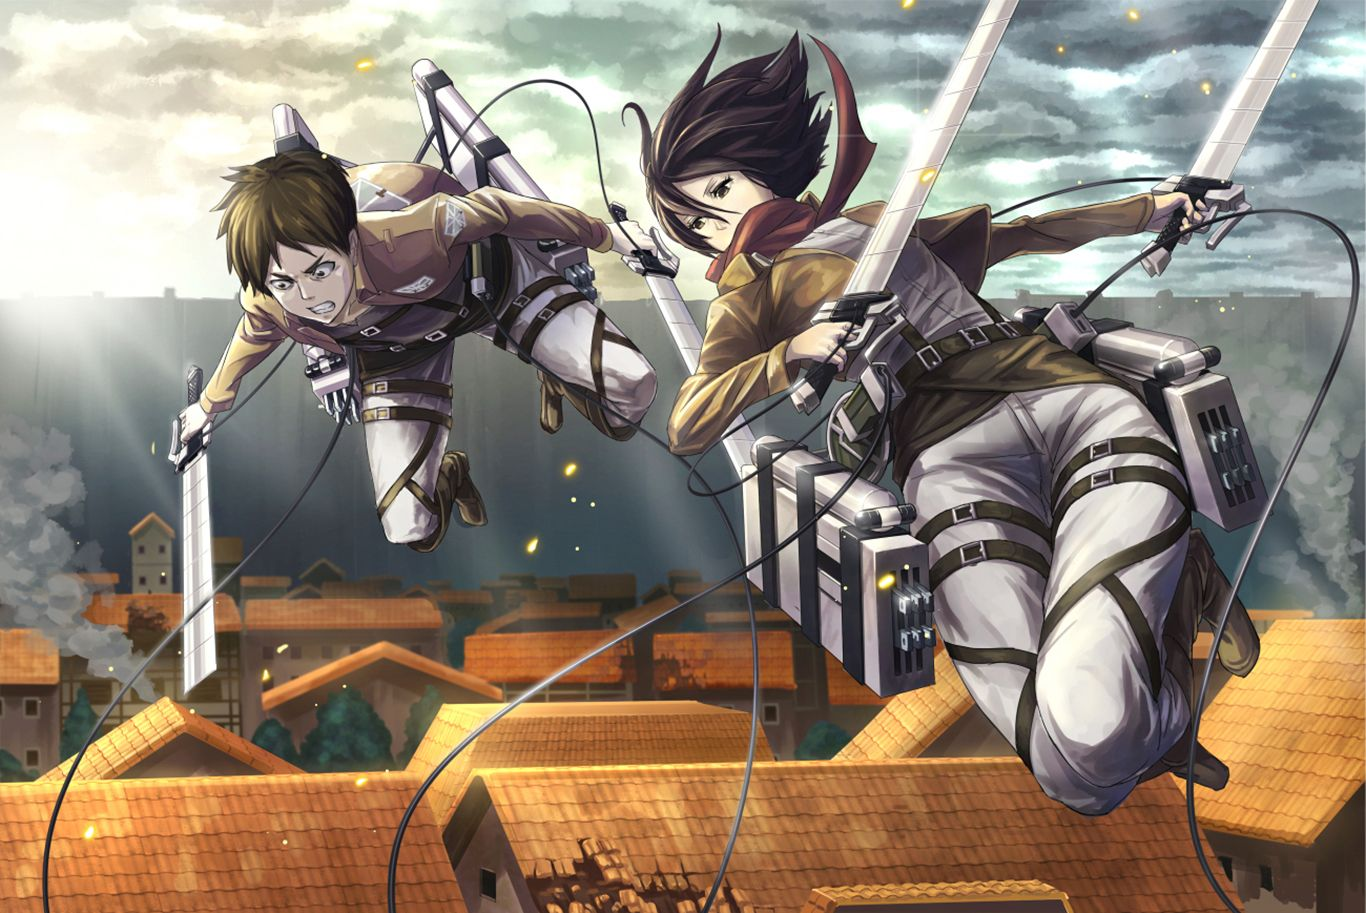 Eren And Mikasa Computer Wallpapers Desktop Backgrounds 1366x913 Id 653502 Attack On Titan Anime Eren And Mikasa Attack On Titan